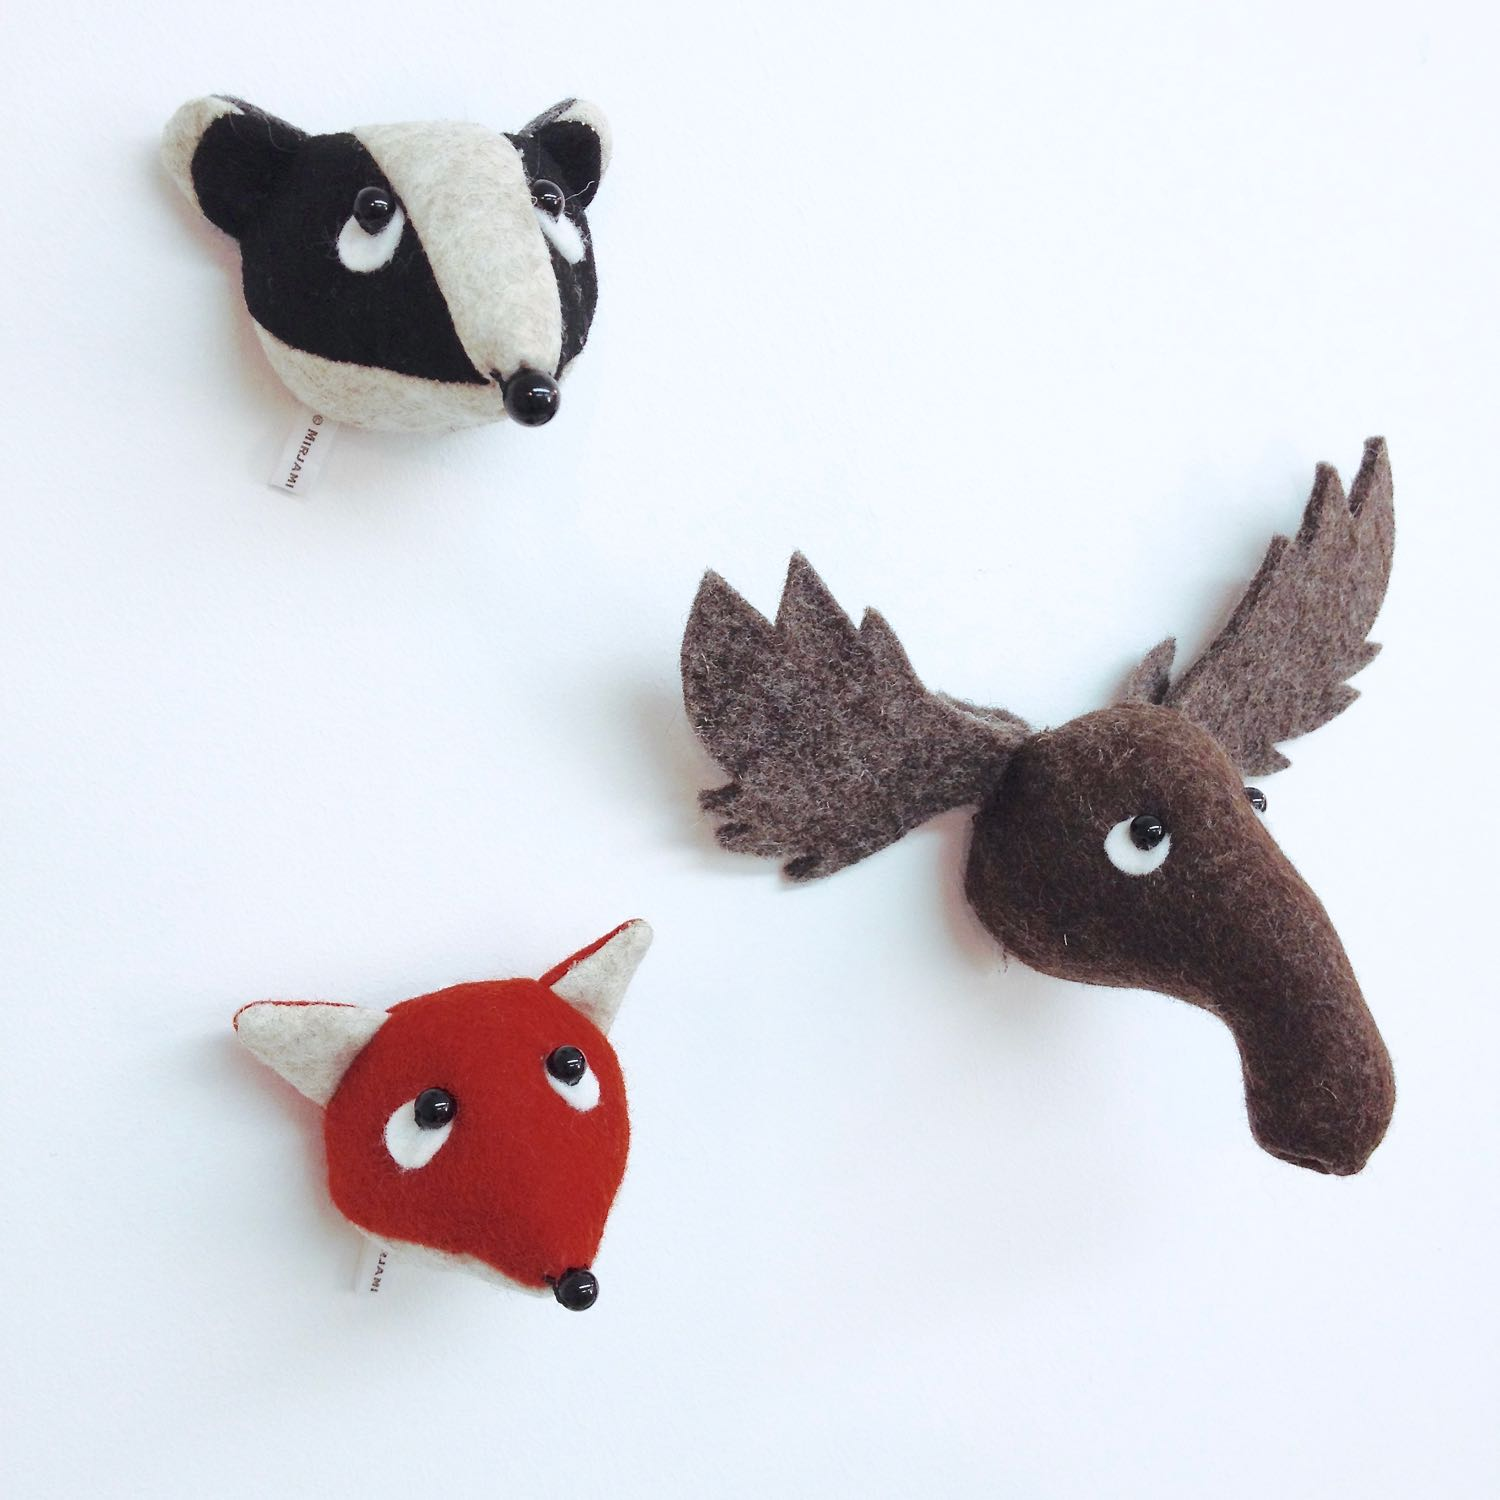 Miniature felt animal wall hangings by Laura Mirjami | Mirjami Design